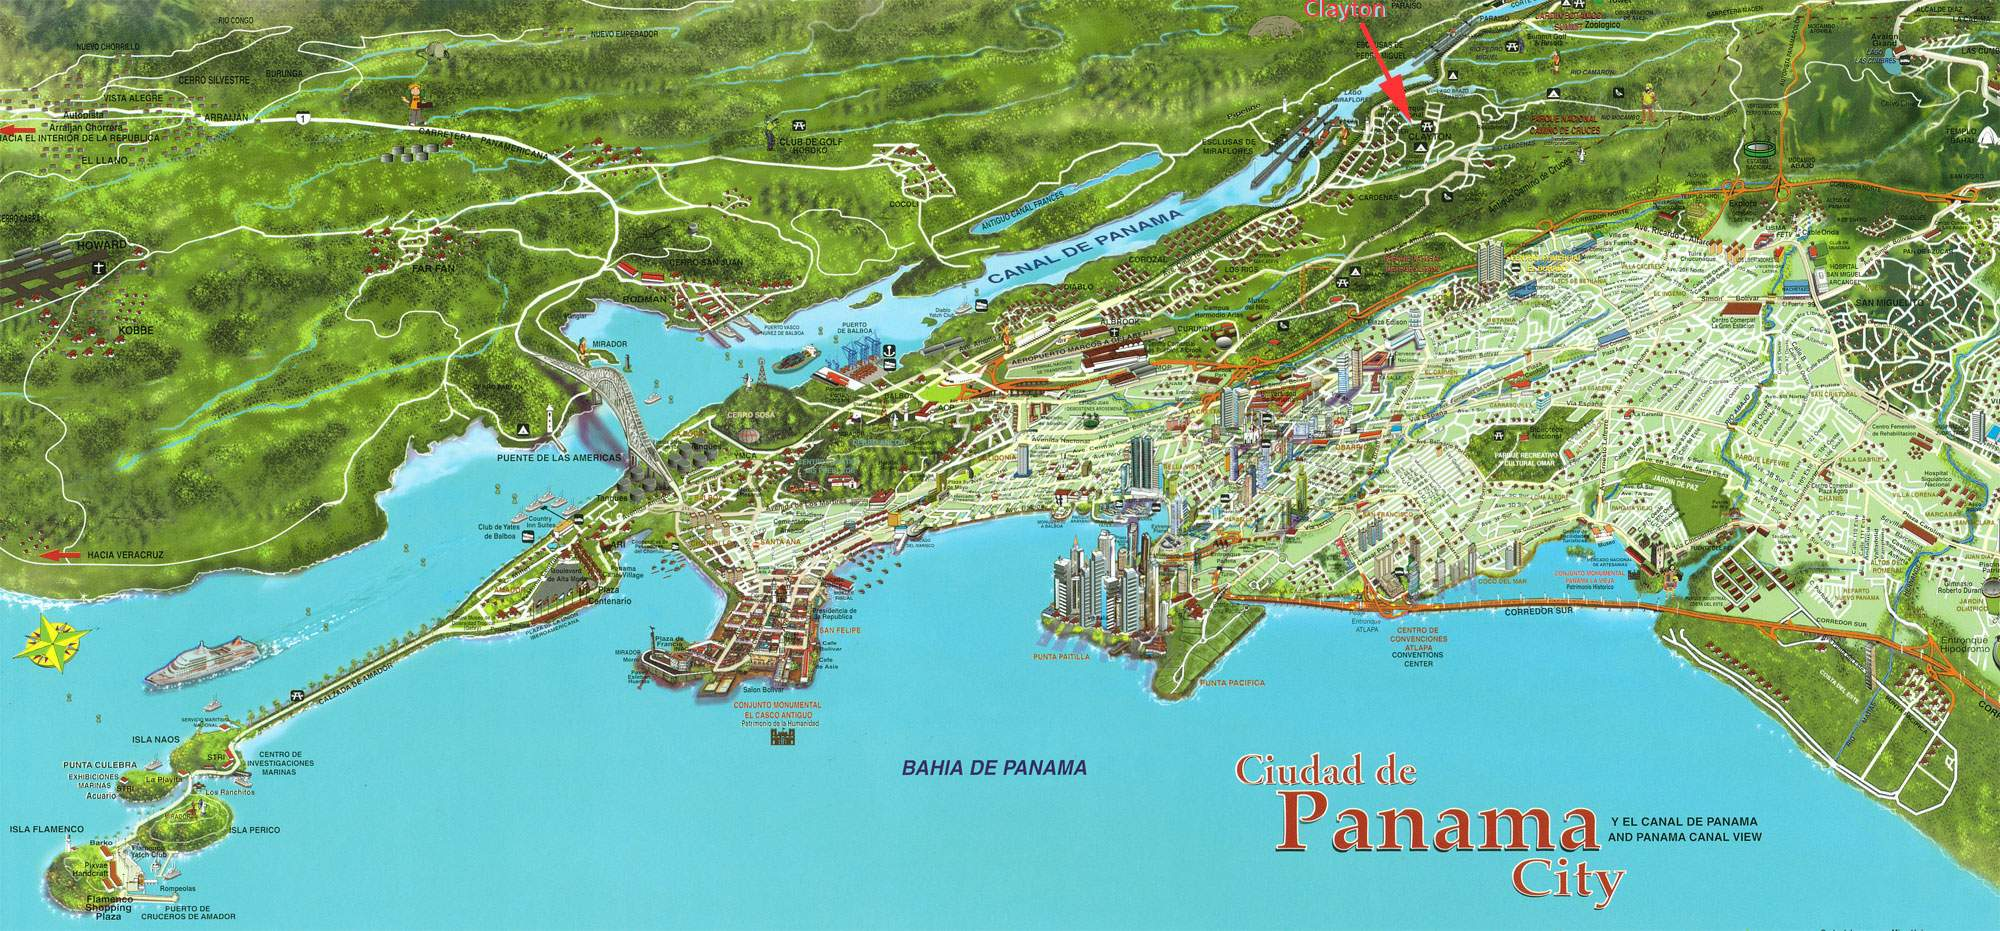 Large Panama City Maps For Free Download And Print High - Map panama